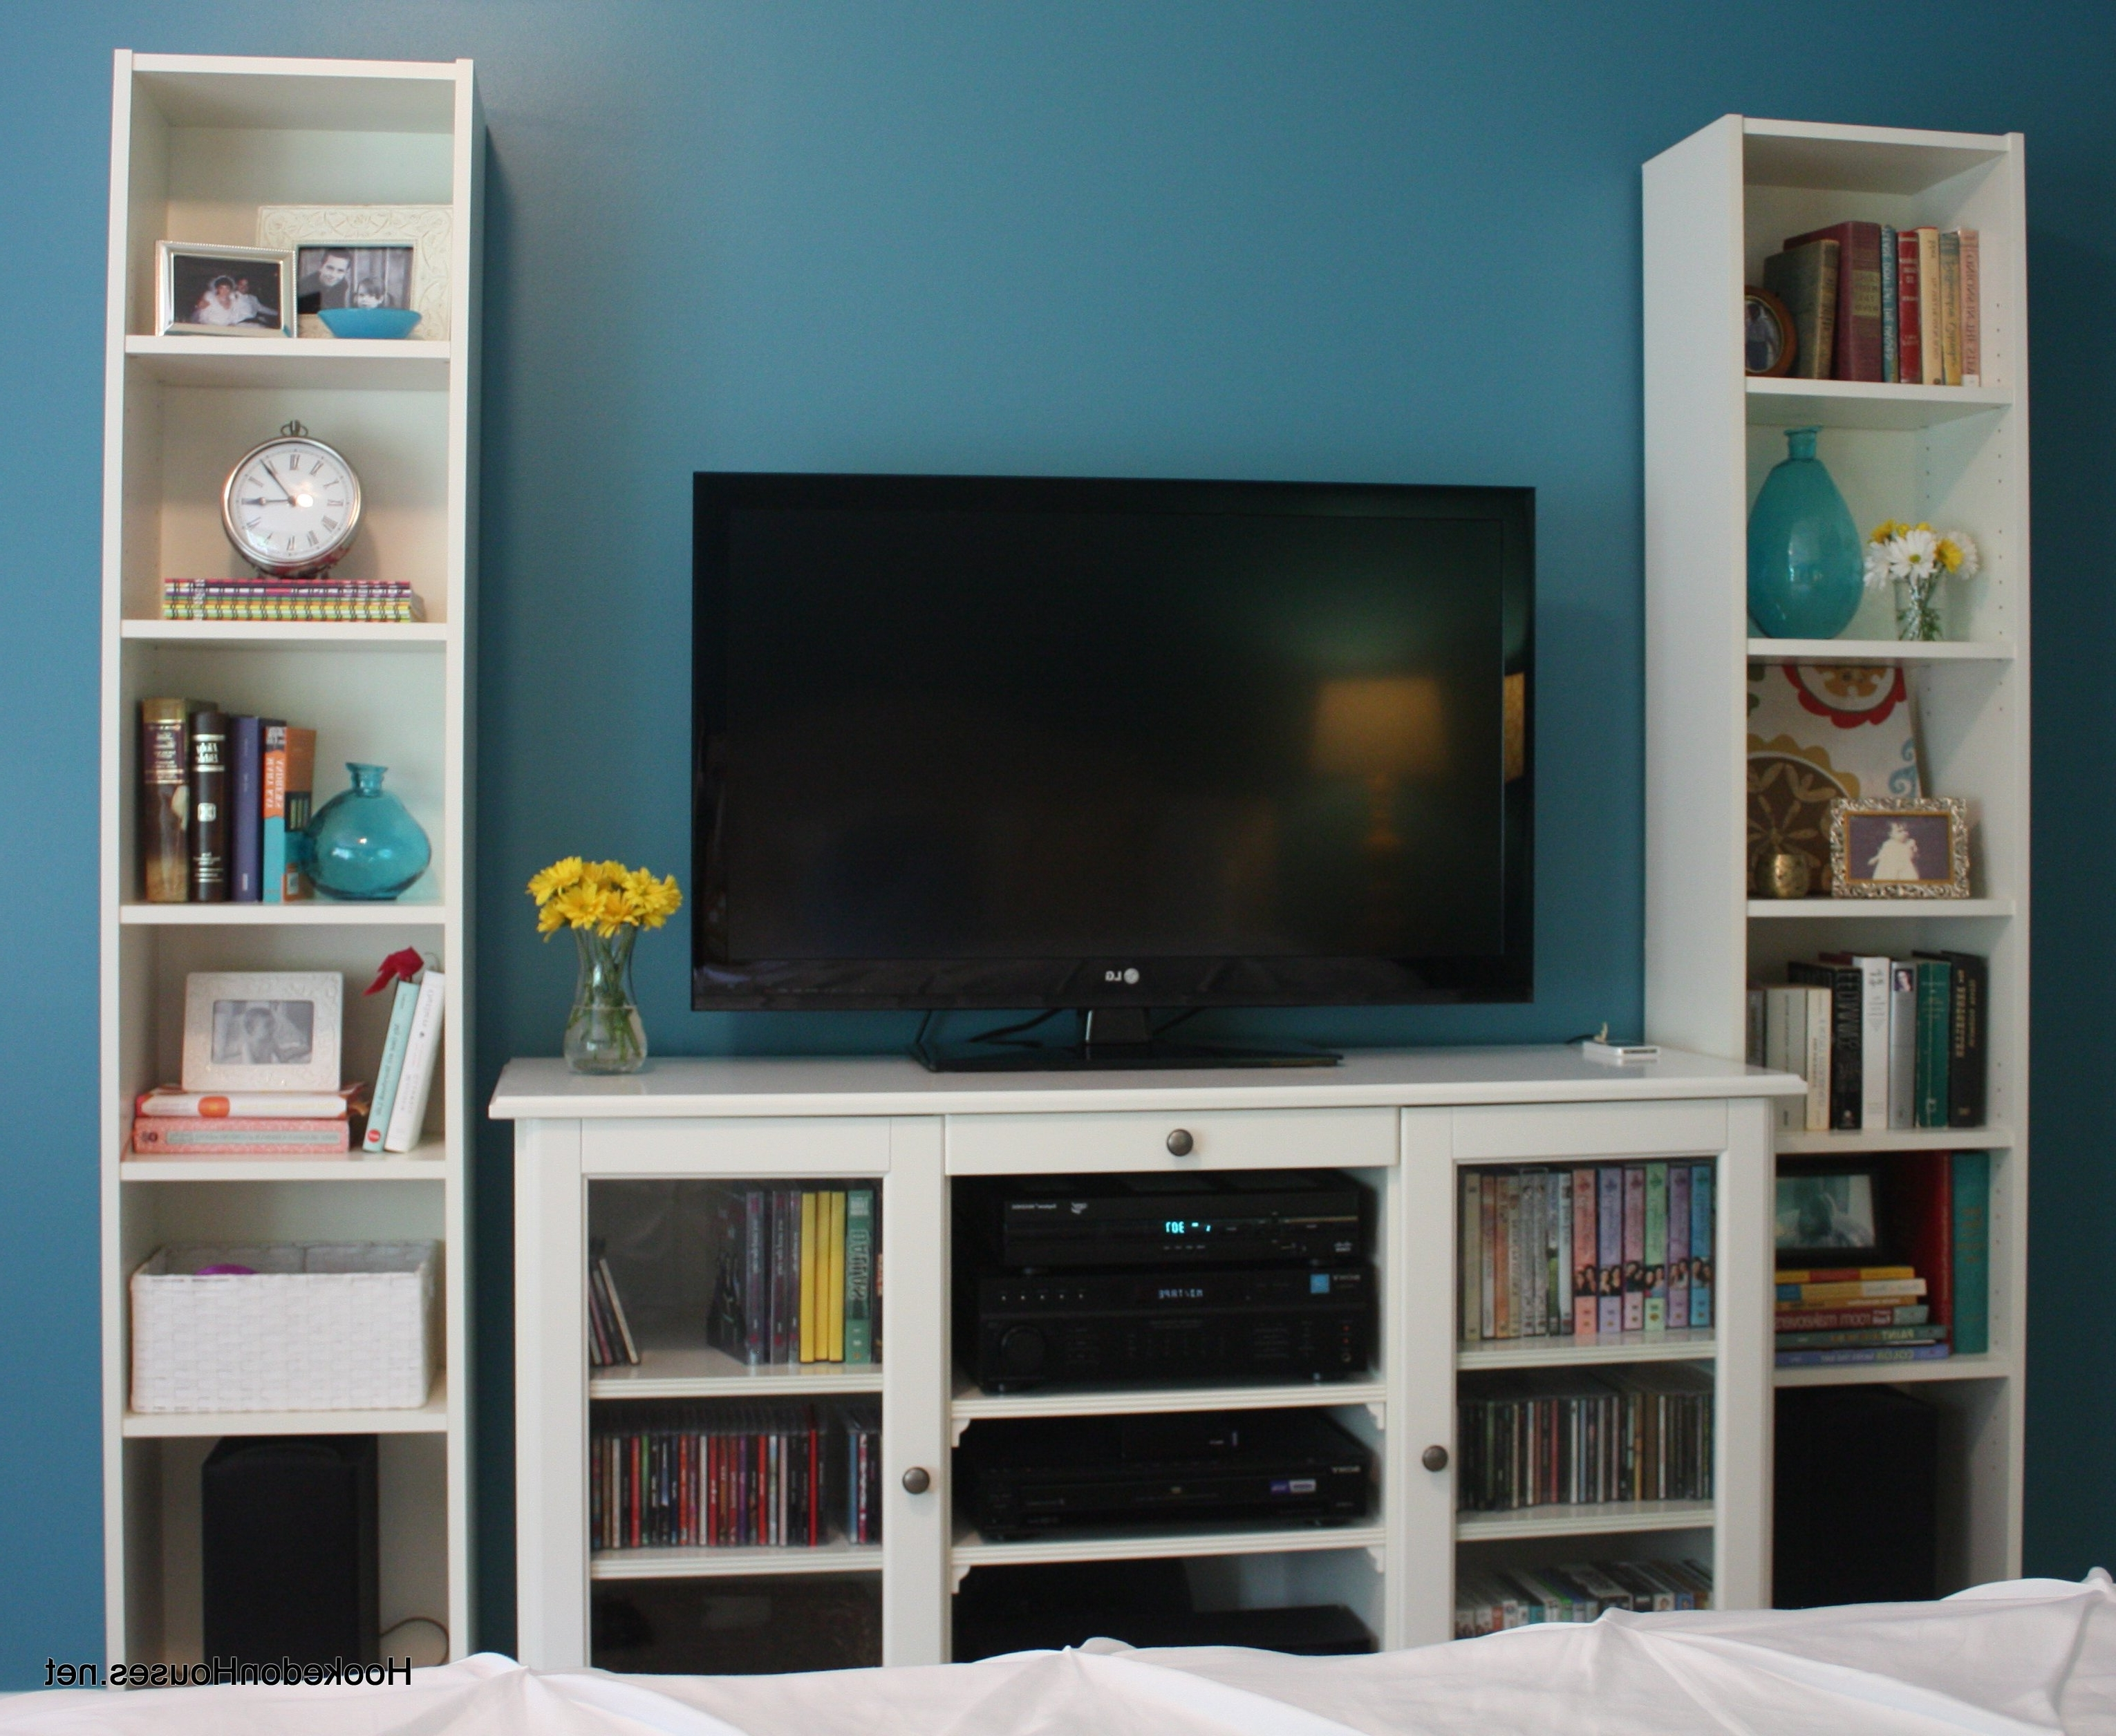 Trendy Tv And Bookshelves Within Tv Cabinet And Bookshelves – Hooked On Houses (View 5 of 15)